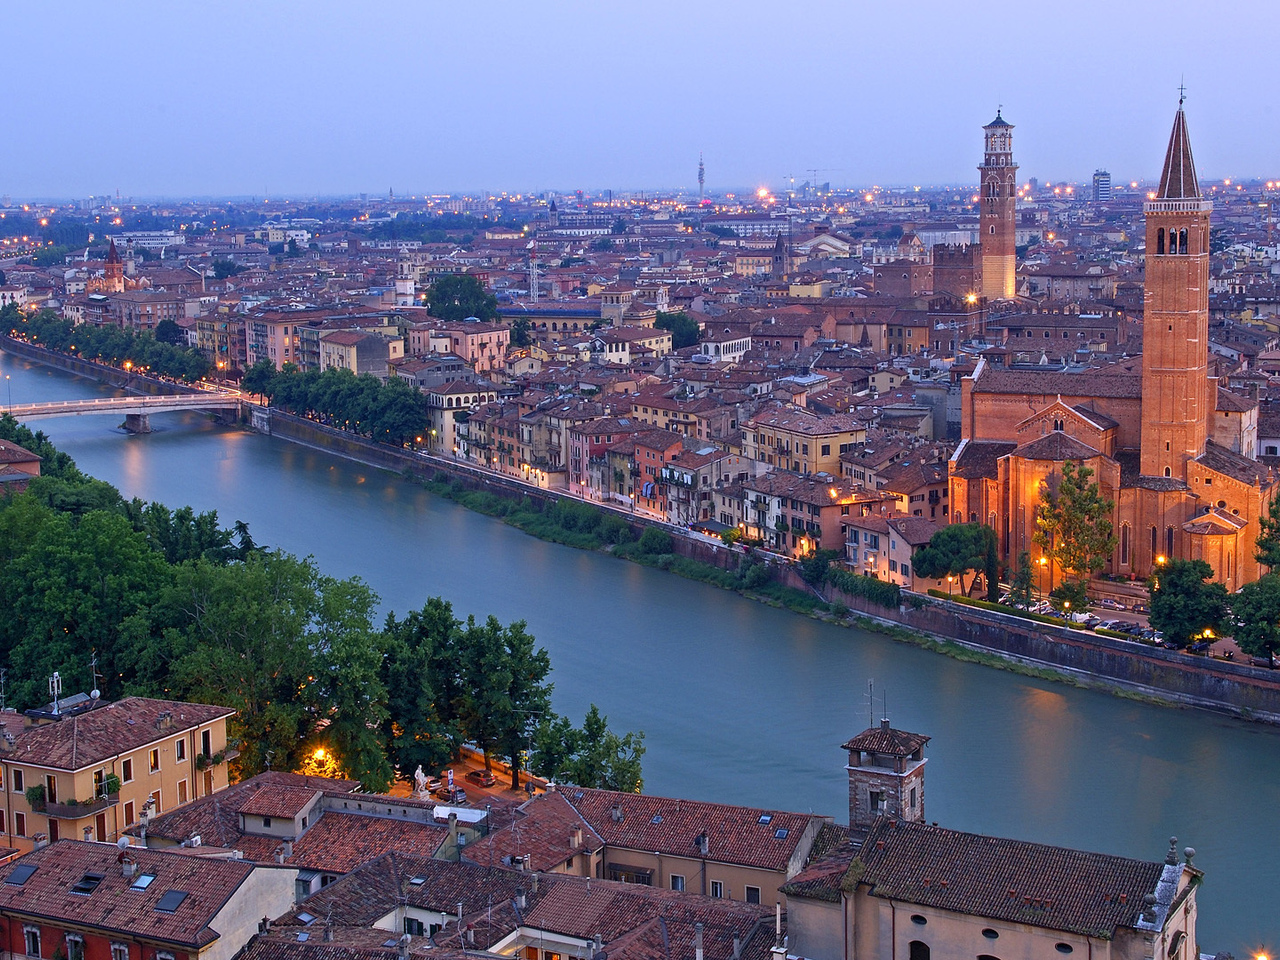 torre dei lamberti, verona, верона, italy, santa anastasia church, италия, adige river